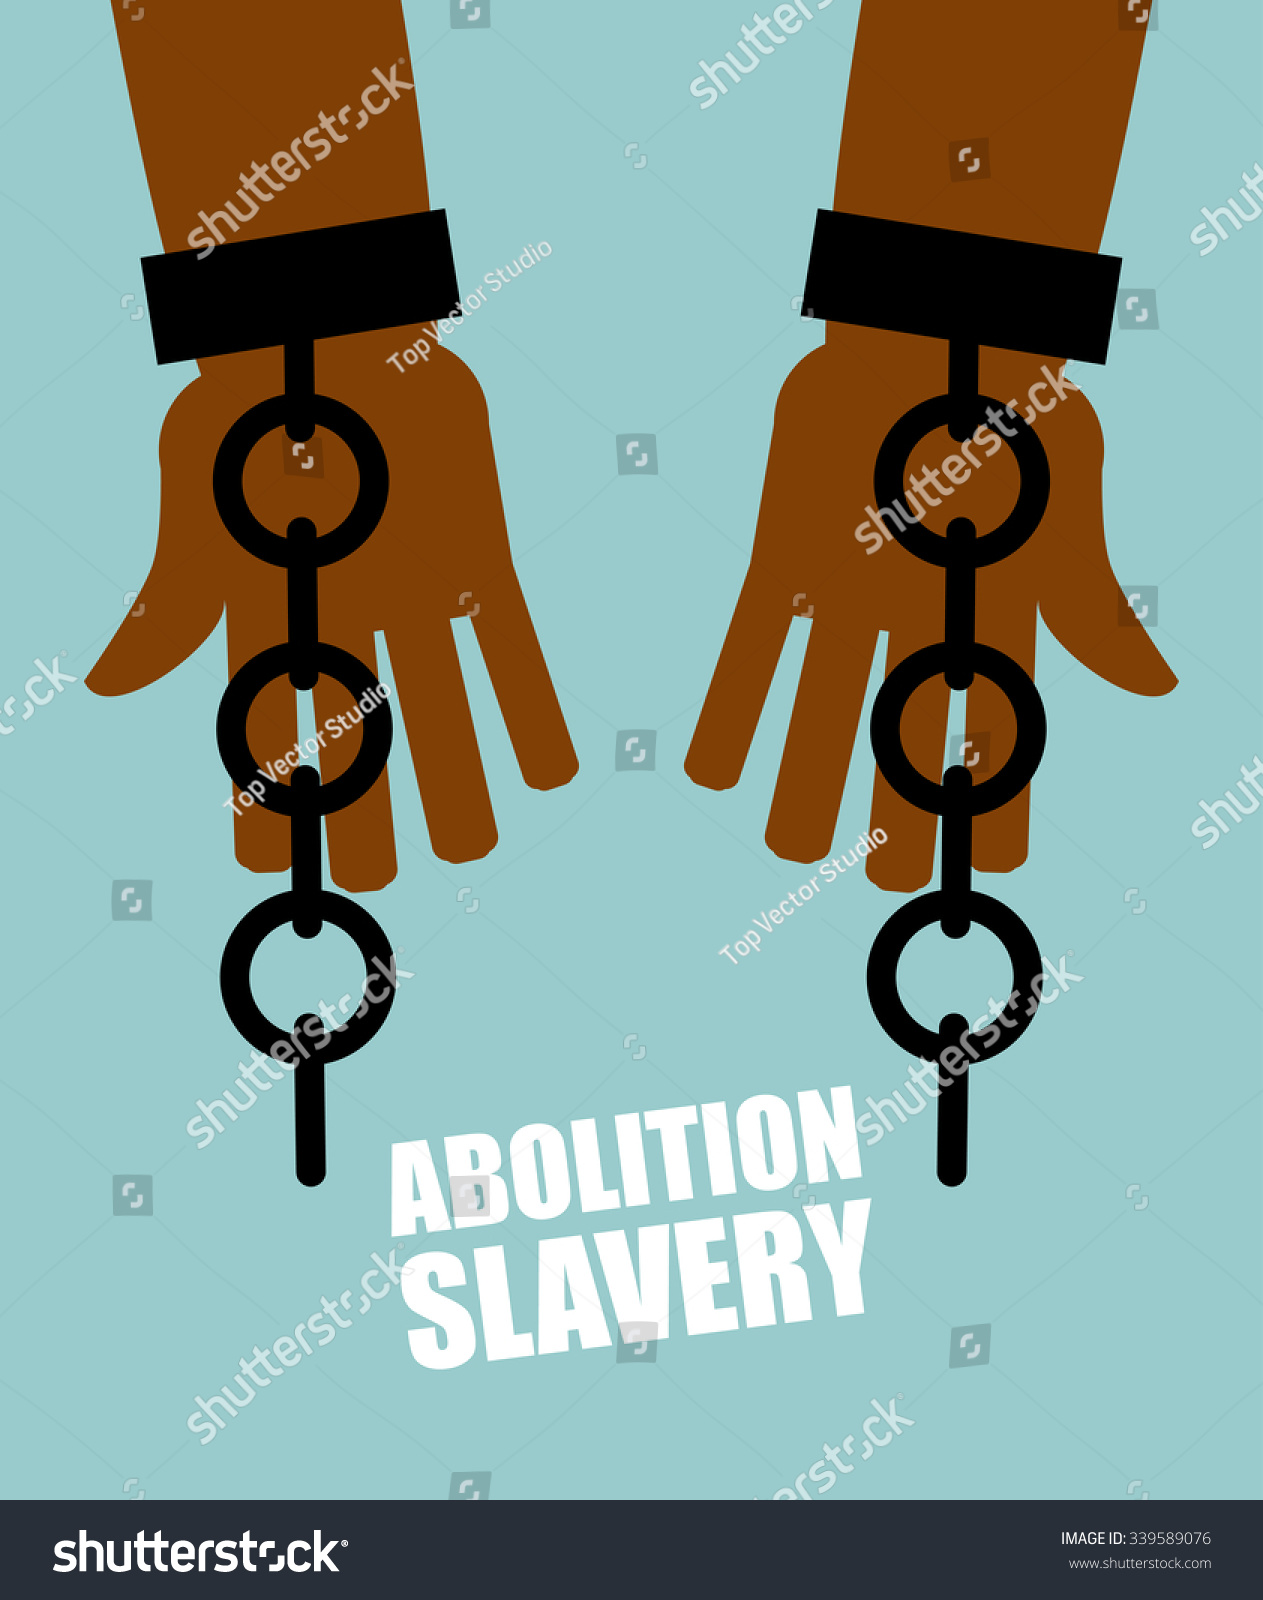 the breaking of the shackles of discrimination Vision: to envision a society where minorities could break the shackles of caste based discrimination with the help of education mission : to empower indigenous women through skill based training and help them make a transition towards a sustainable lifestyle.